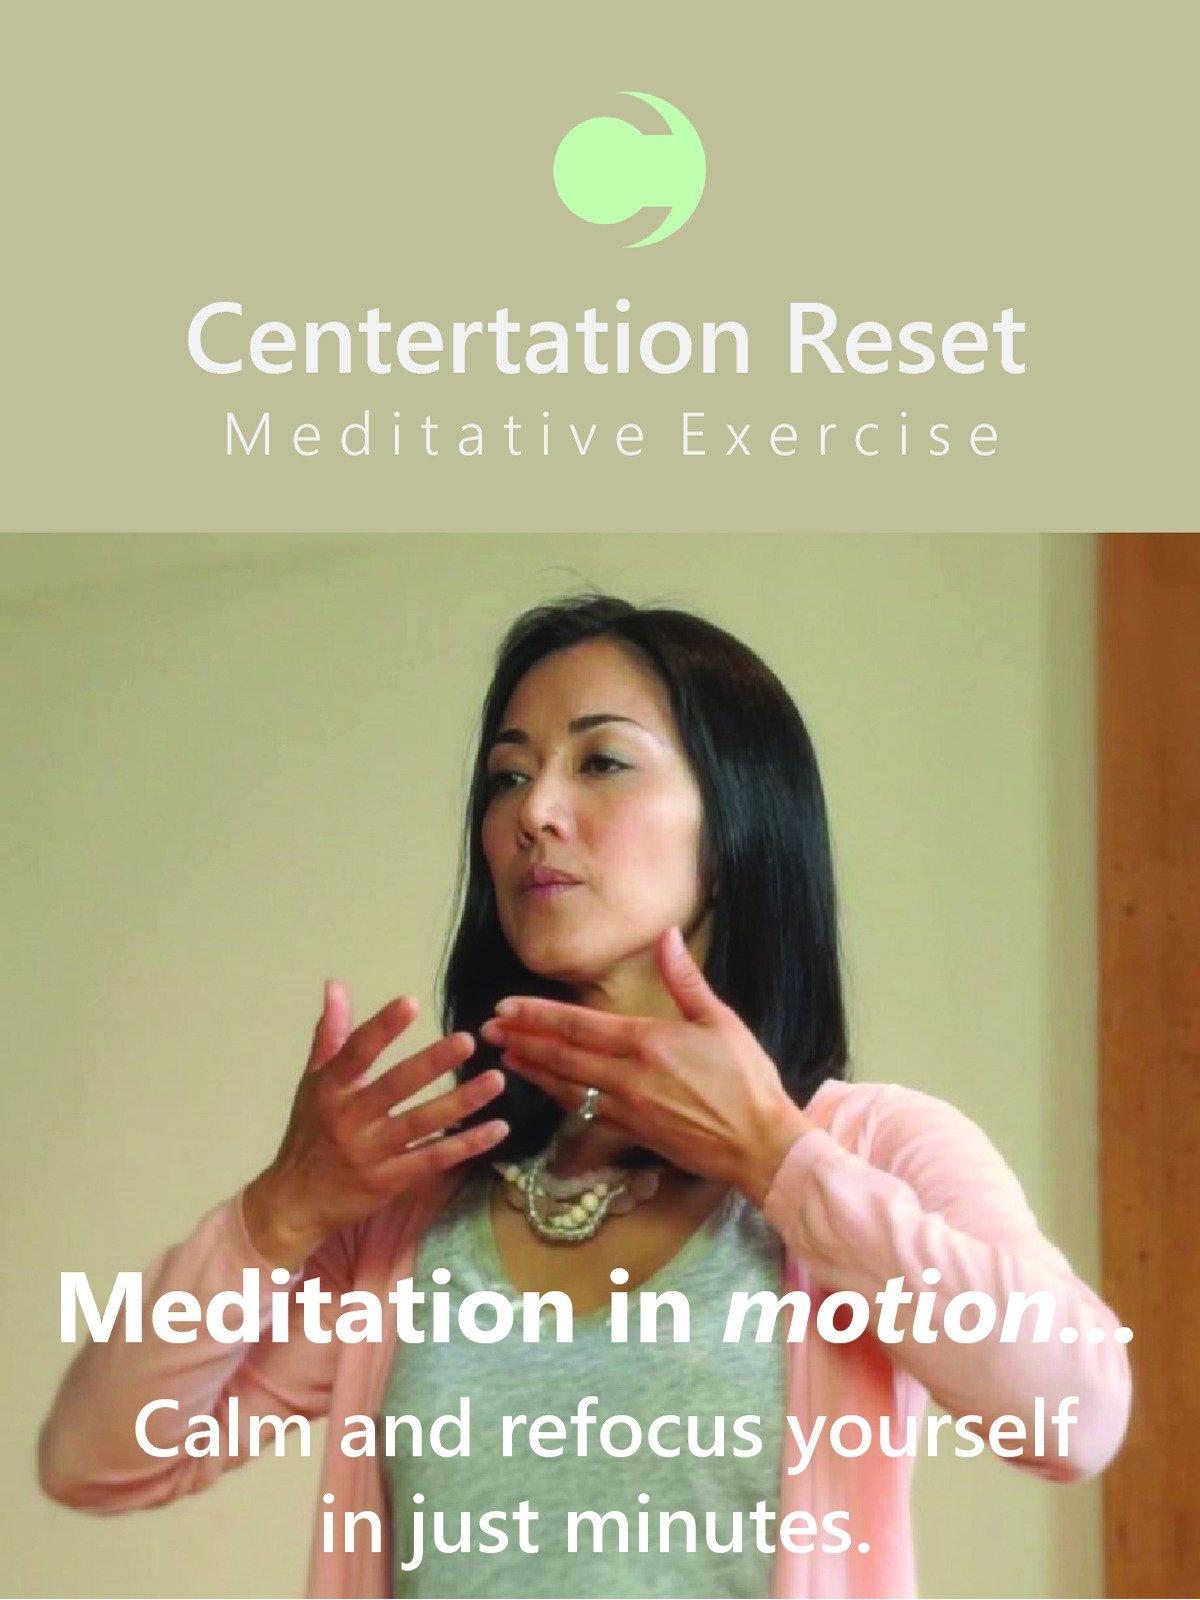 Centertation Reset Meditative Exercise is Meditation in Motion - to calm and refocus yourself - in just minutes.